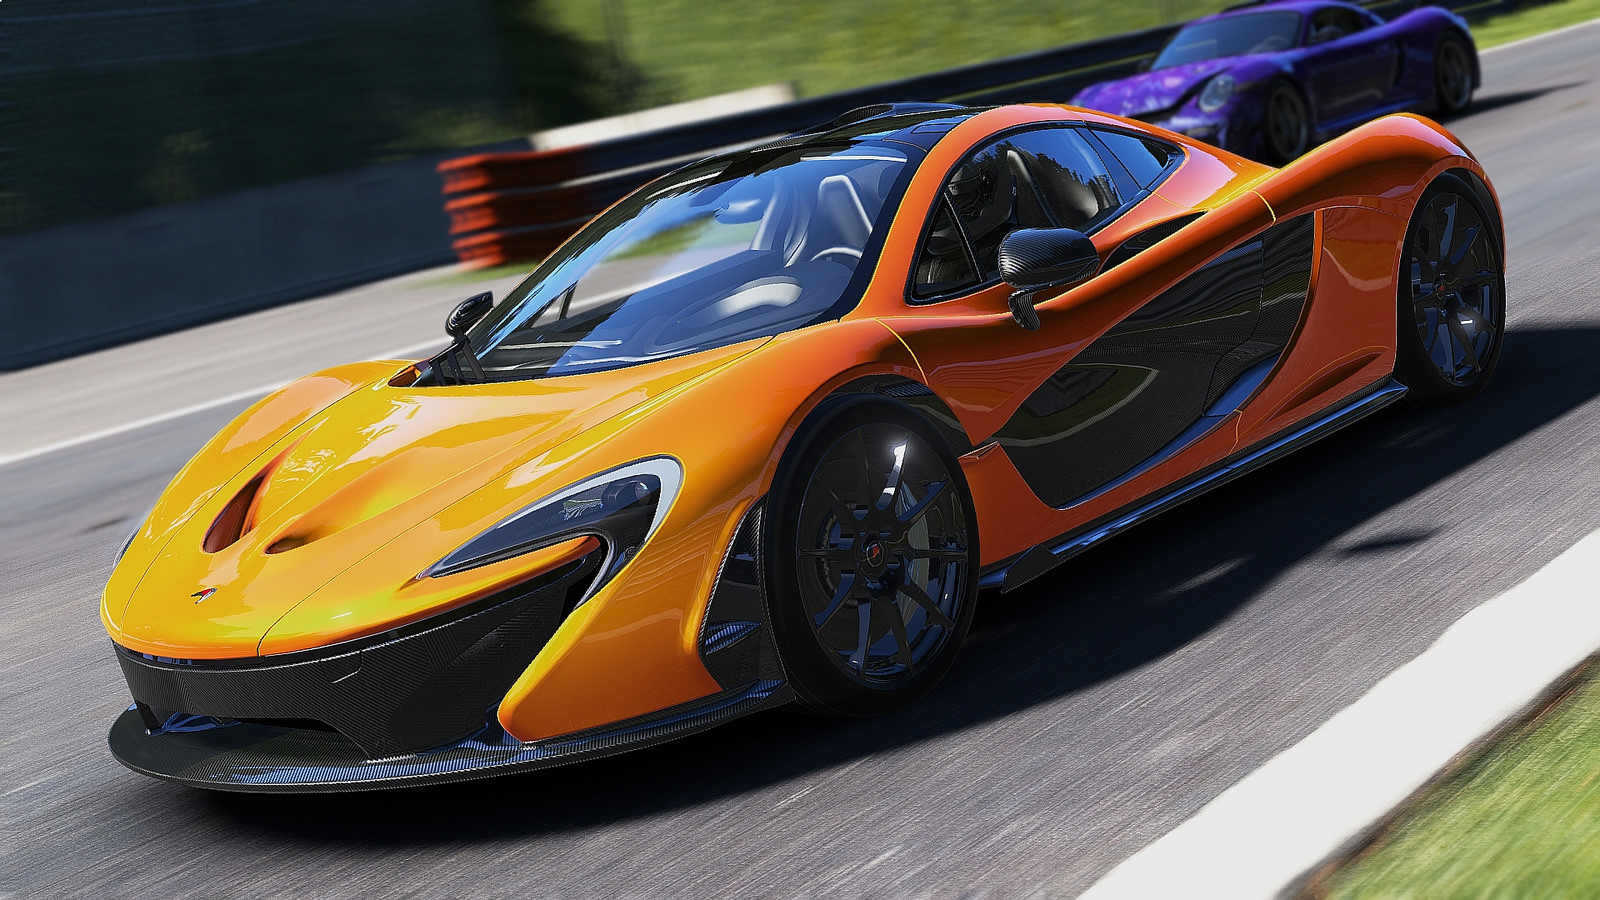 La mclaren p1 est arriv e dans project cars plan te - Project cars mclaren p1 ...